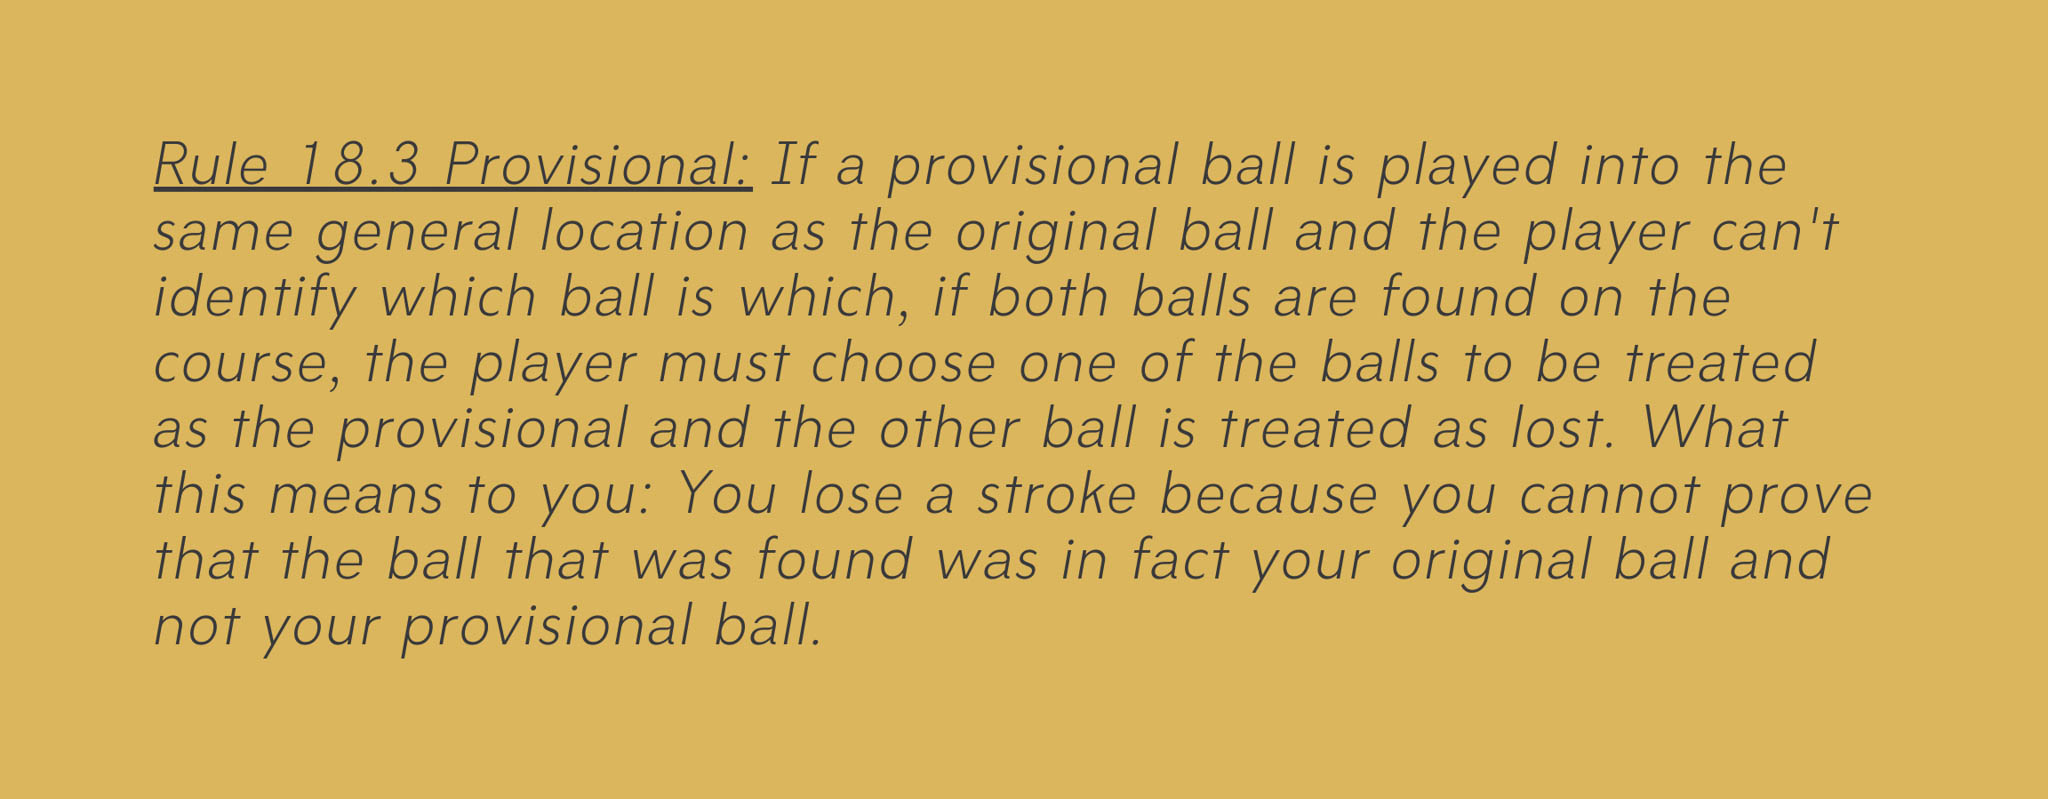 Rule-18.3-Provisional-2